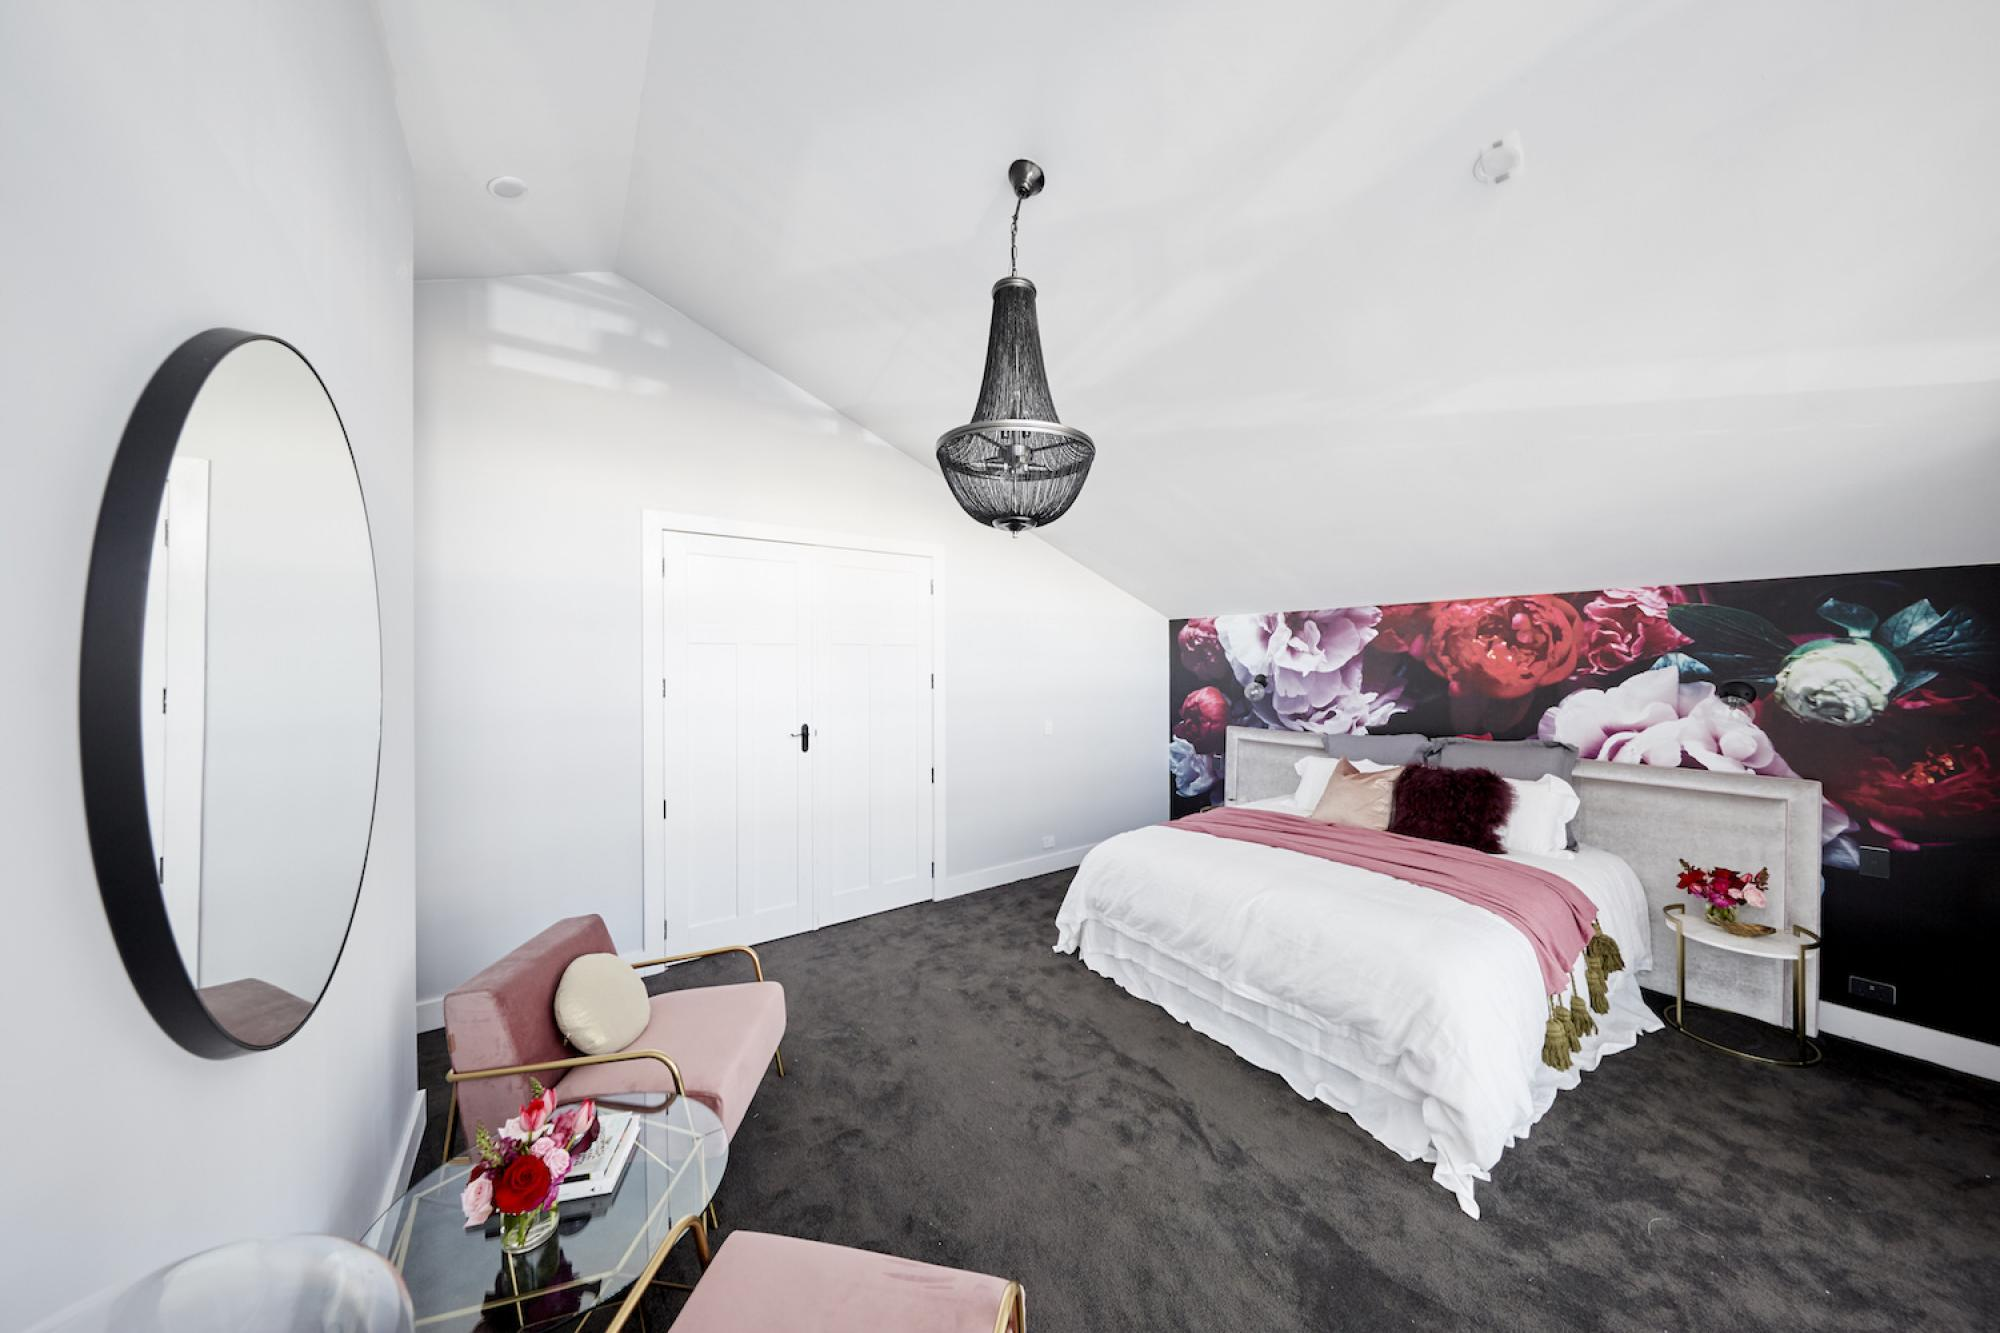 Floral Wall Paper in Modern Room